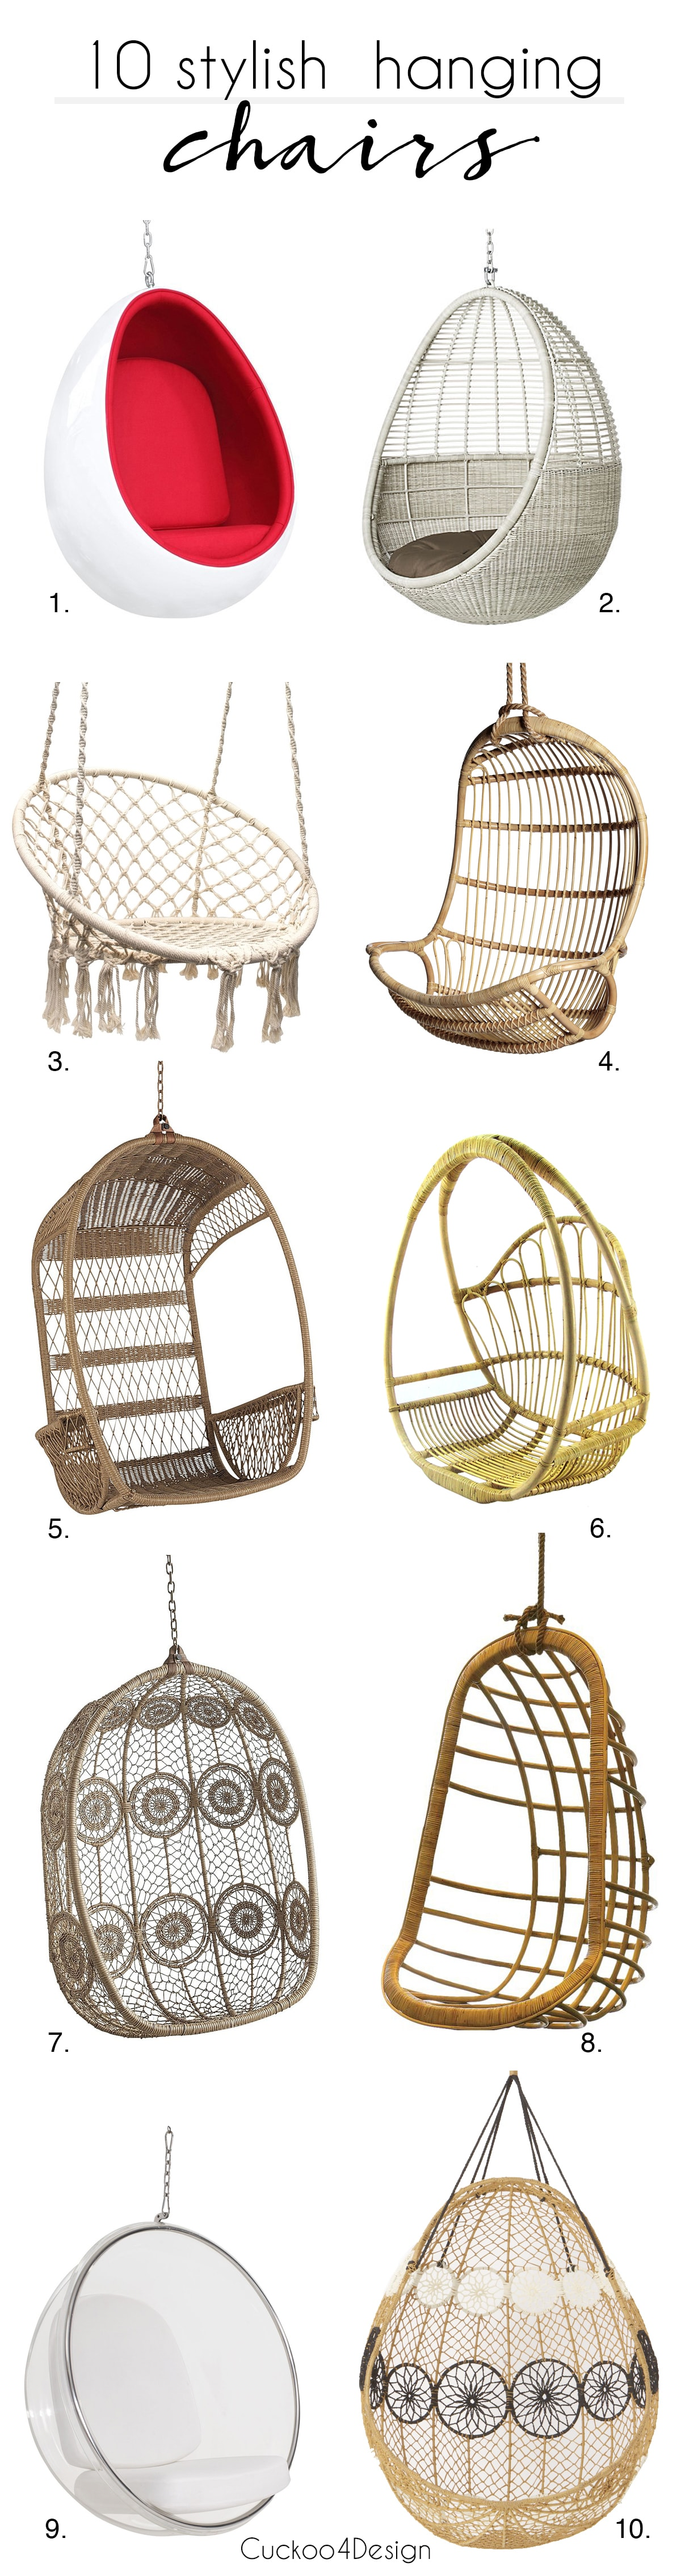 10 Stylish Hanging Chairs | Rattan Hanging Chair | Acrylic Hanging Chair |  Bubble Hanging Chair